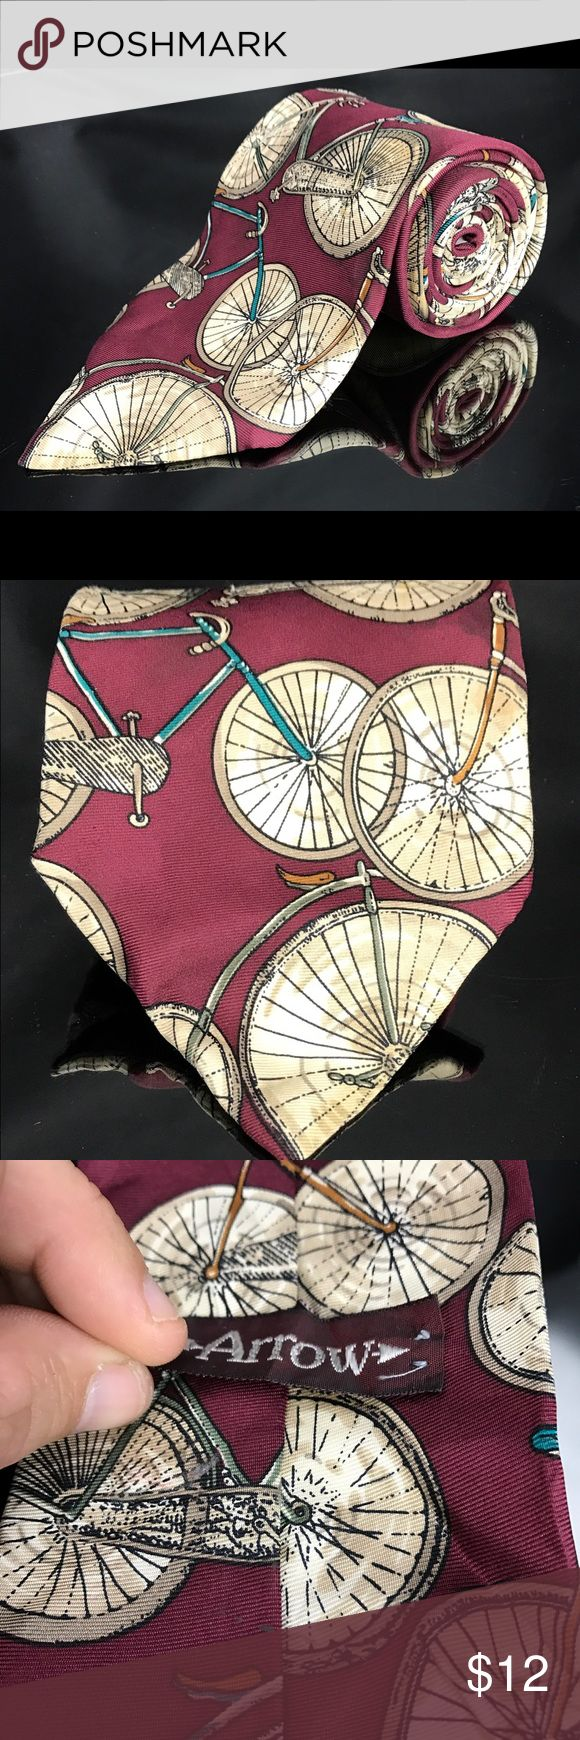 URBAN ARROW Bicycle Novelty Tie You Are Buying A URBAN ARROW Bicycle Novelty Tie 